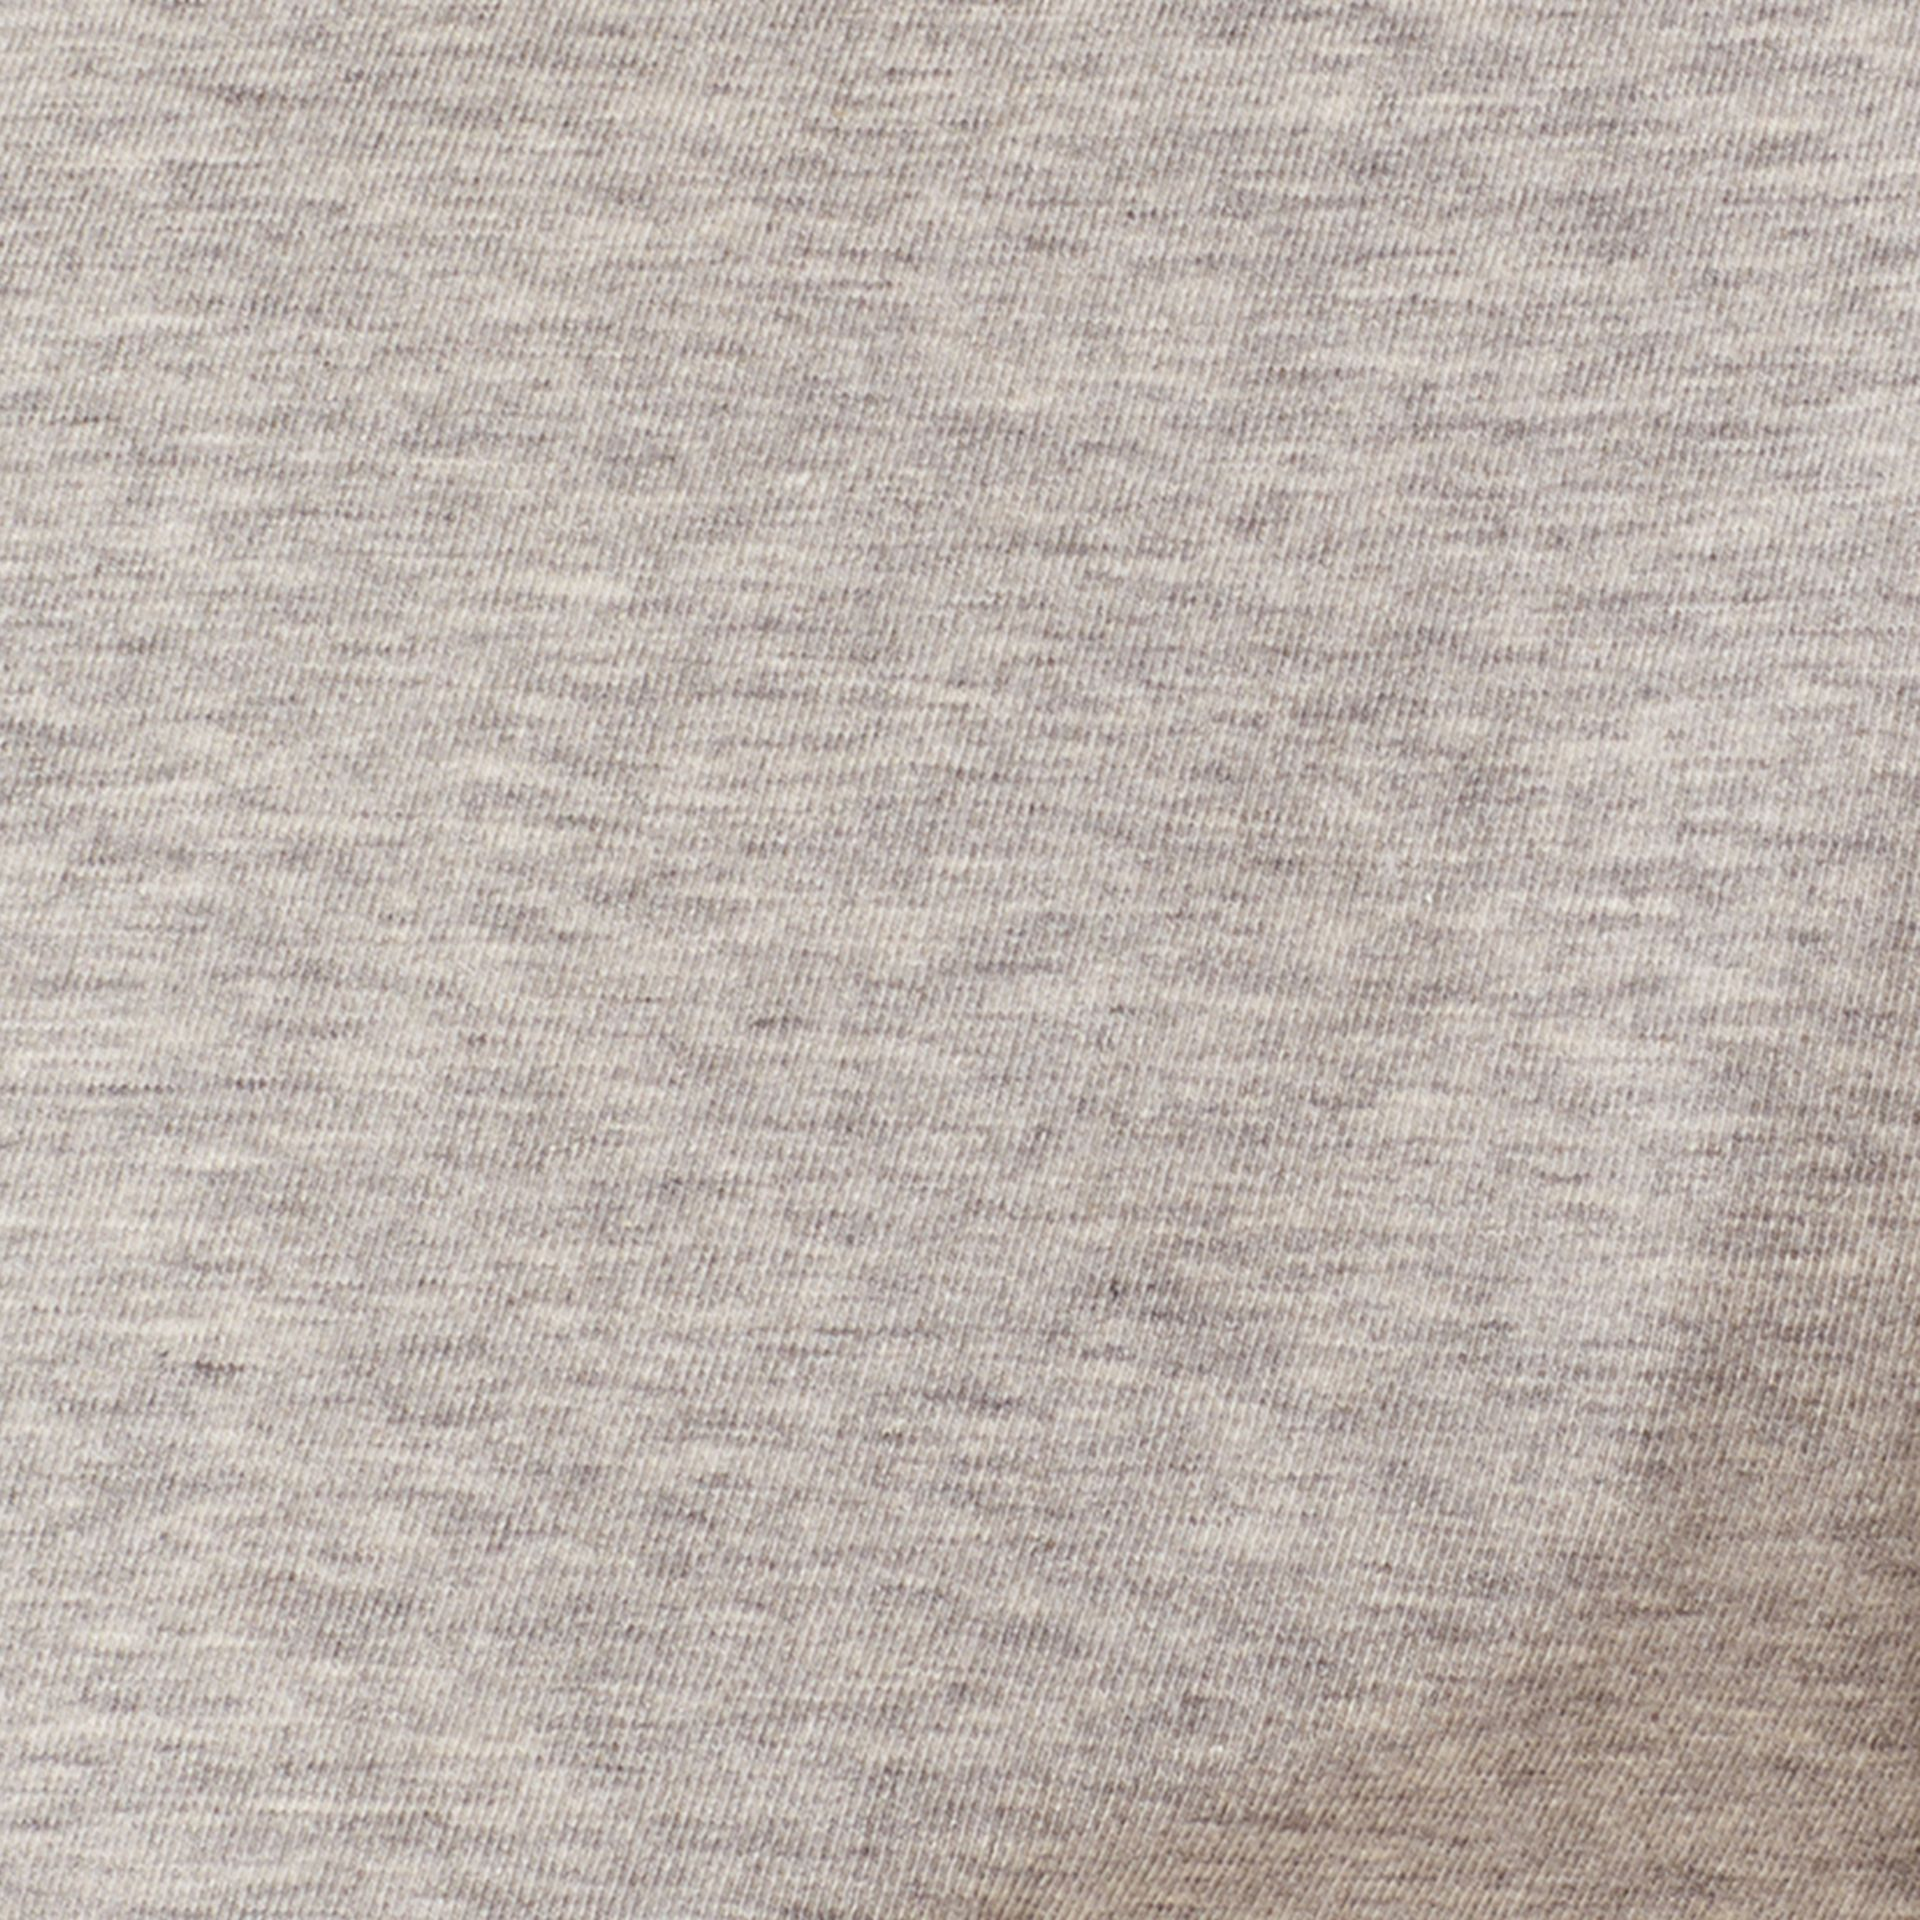 Pale grey melange Check Cuff Stretch Cotton T-Shirt Pale Grey Melange - gallery image 2